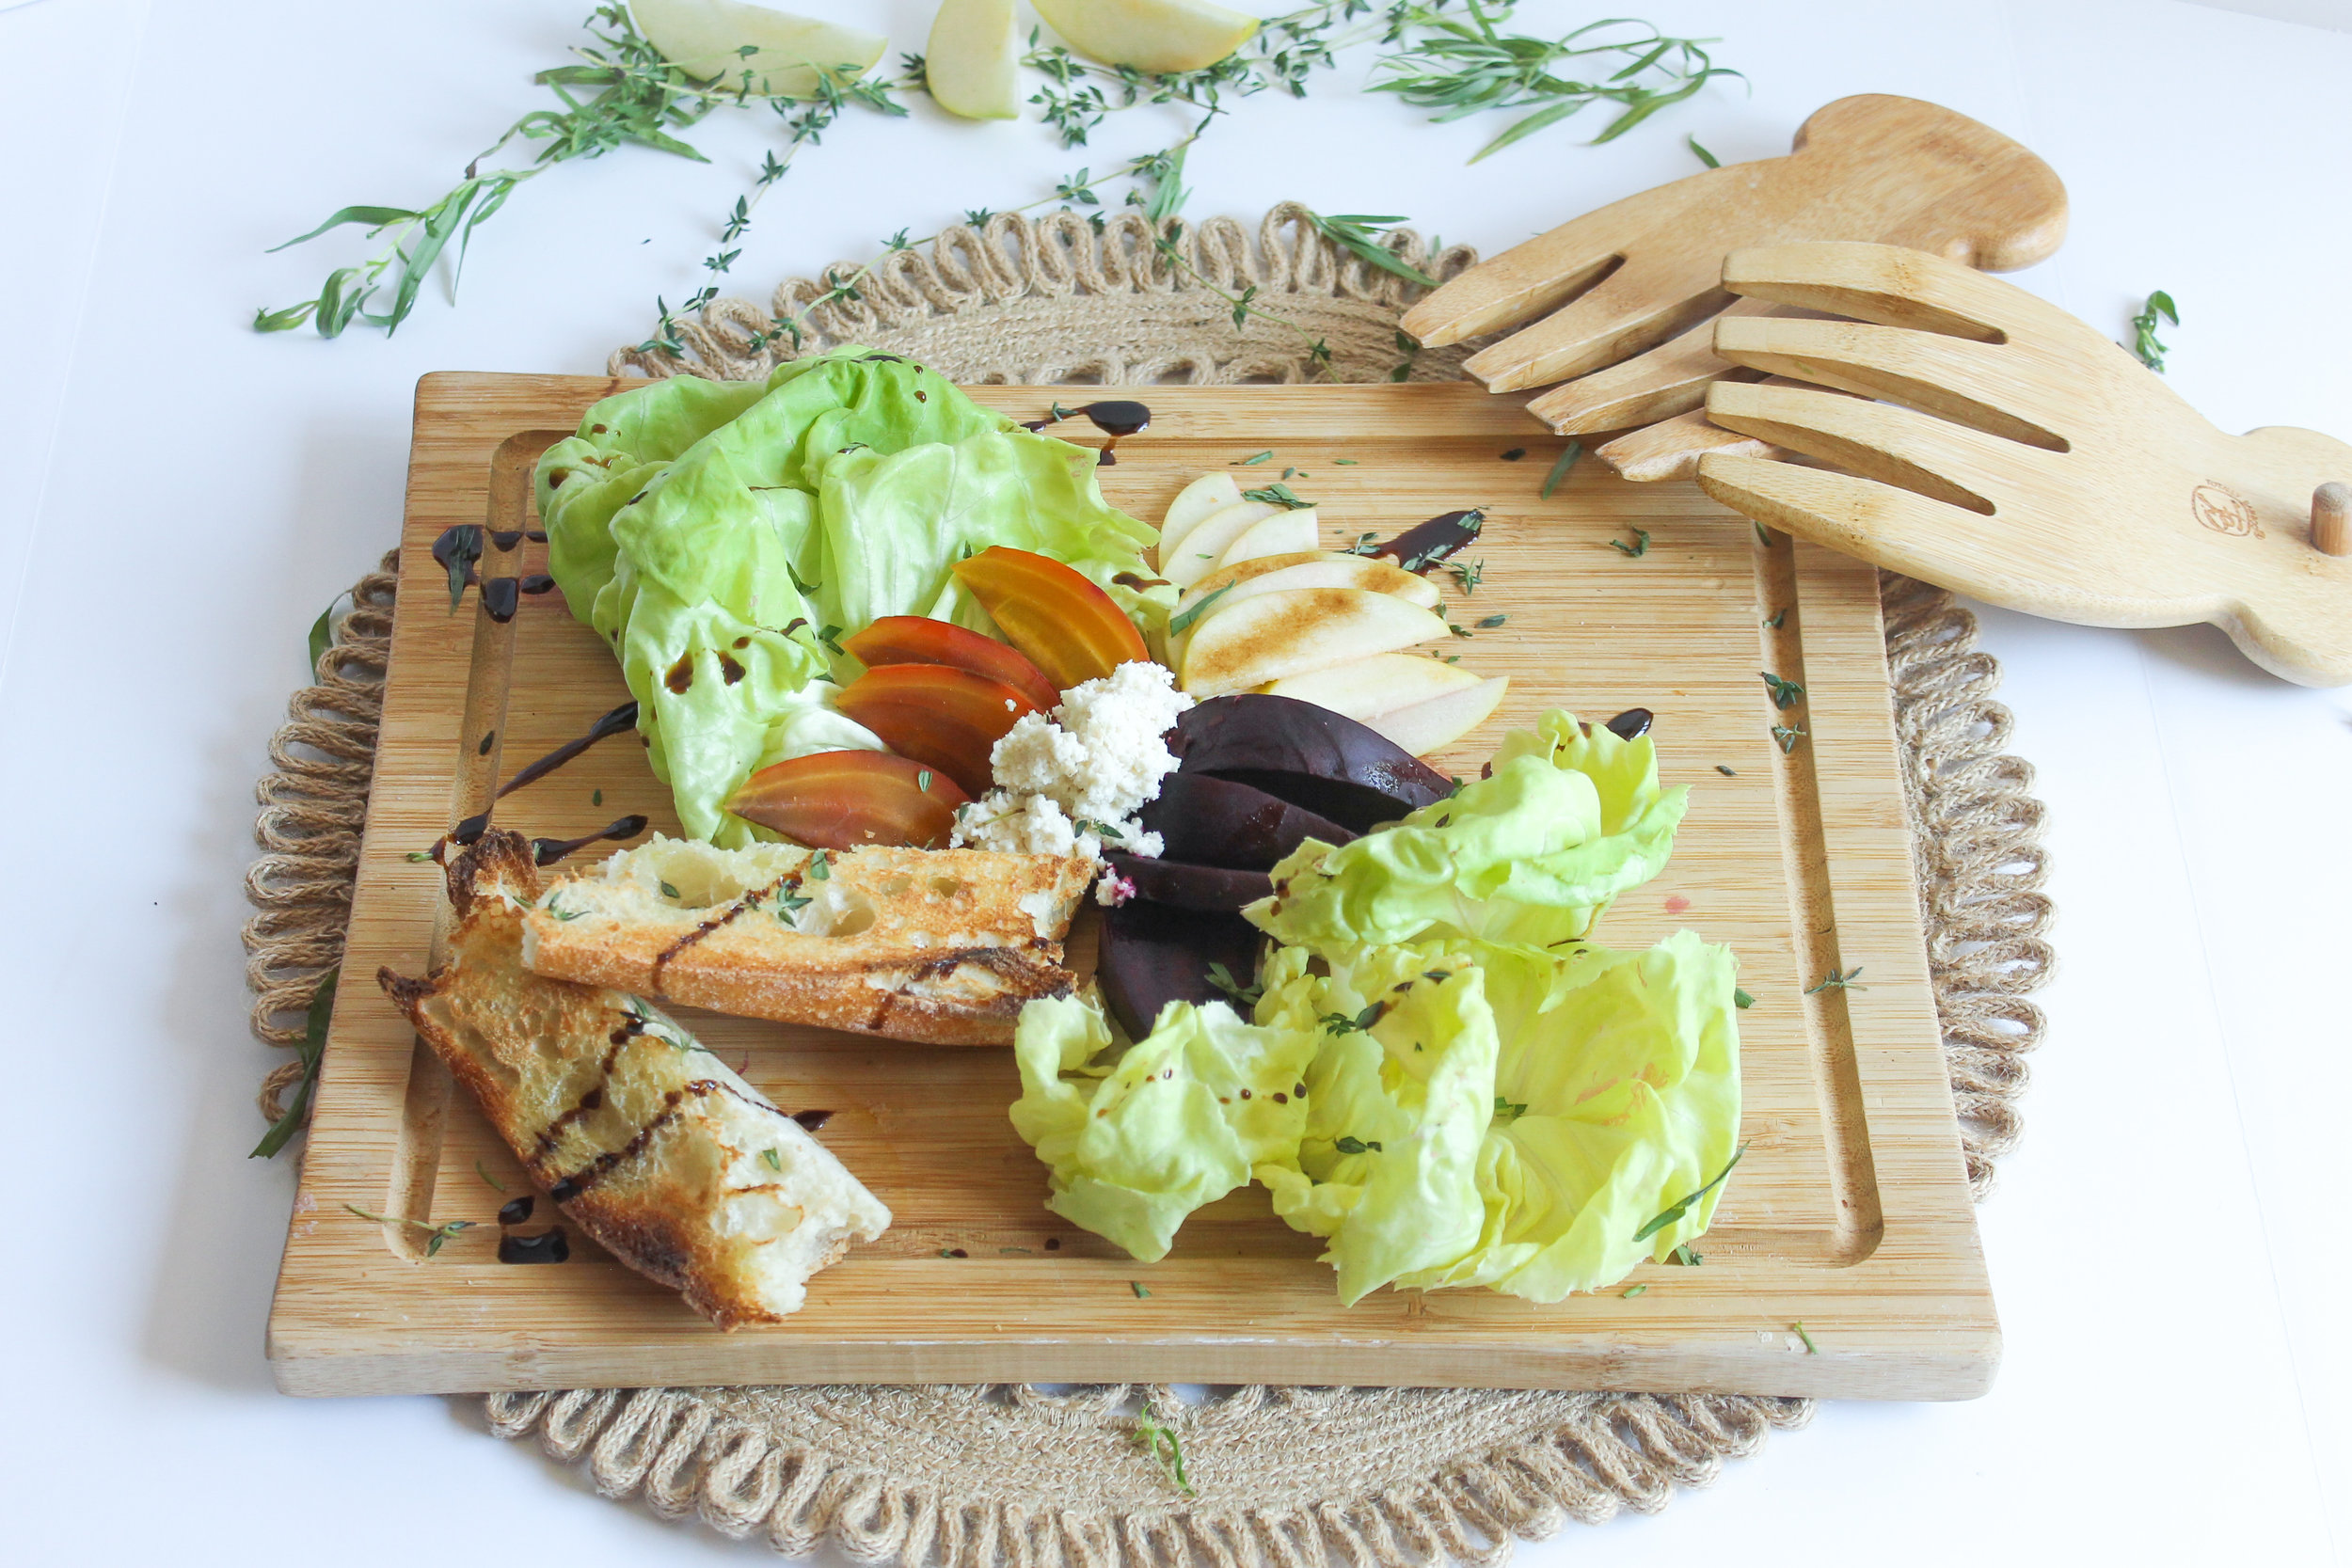 Baby Beet Salad with Rosemary Bread